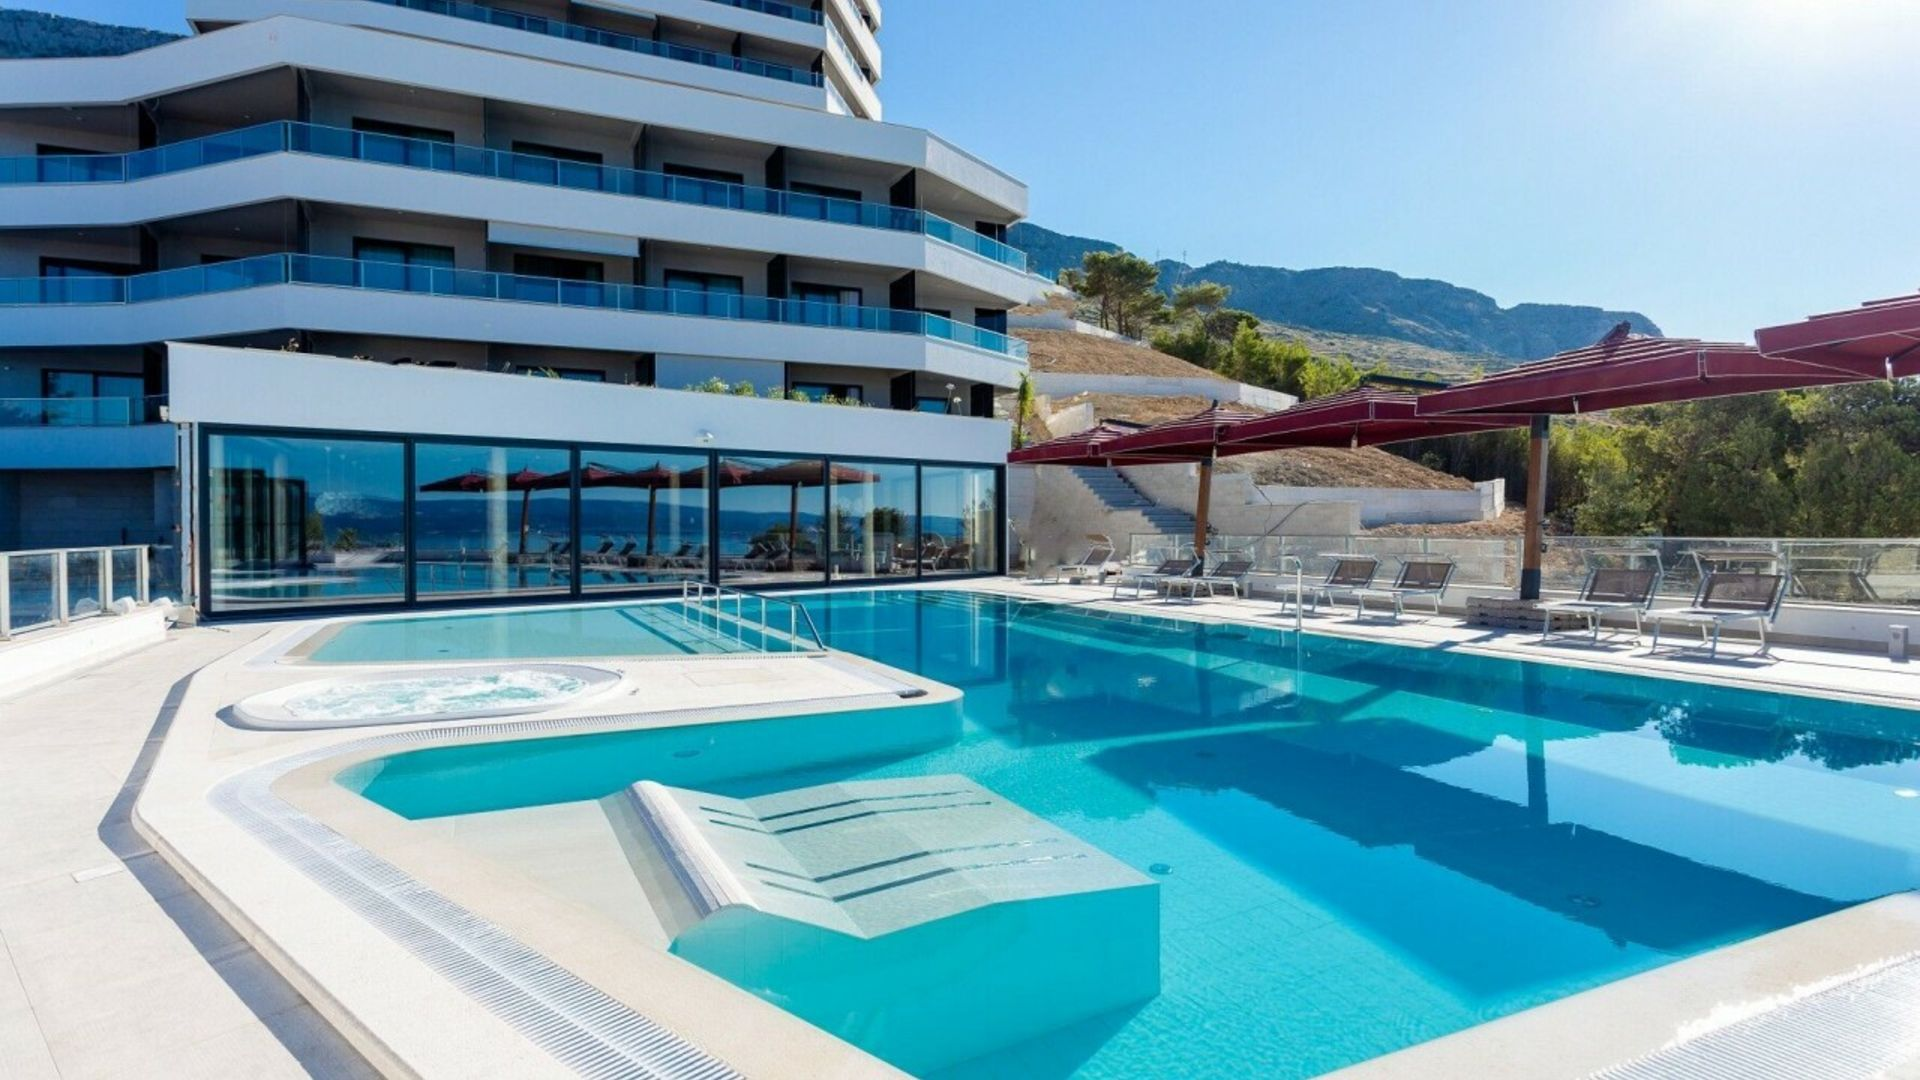 Omis - Silvester im 4* Hotel Plaza Duce